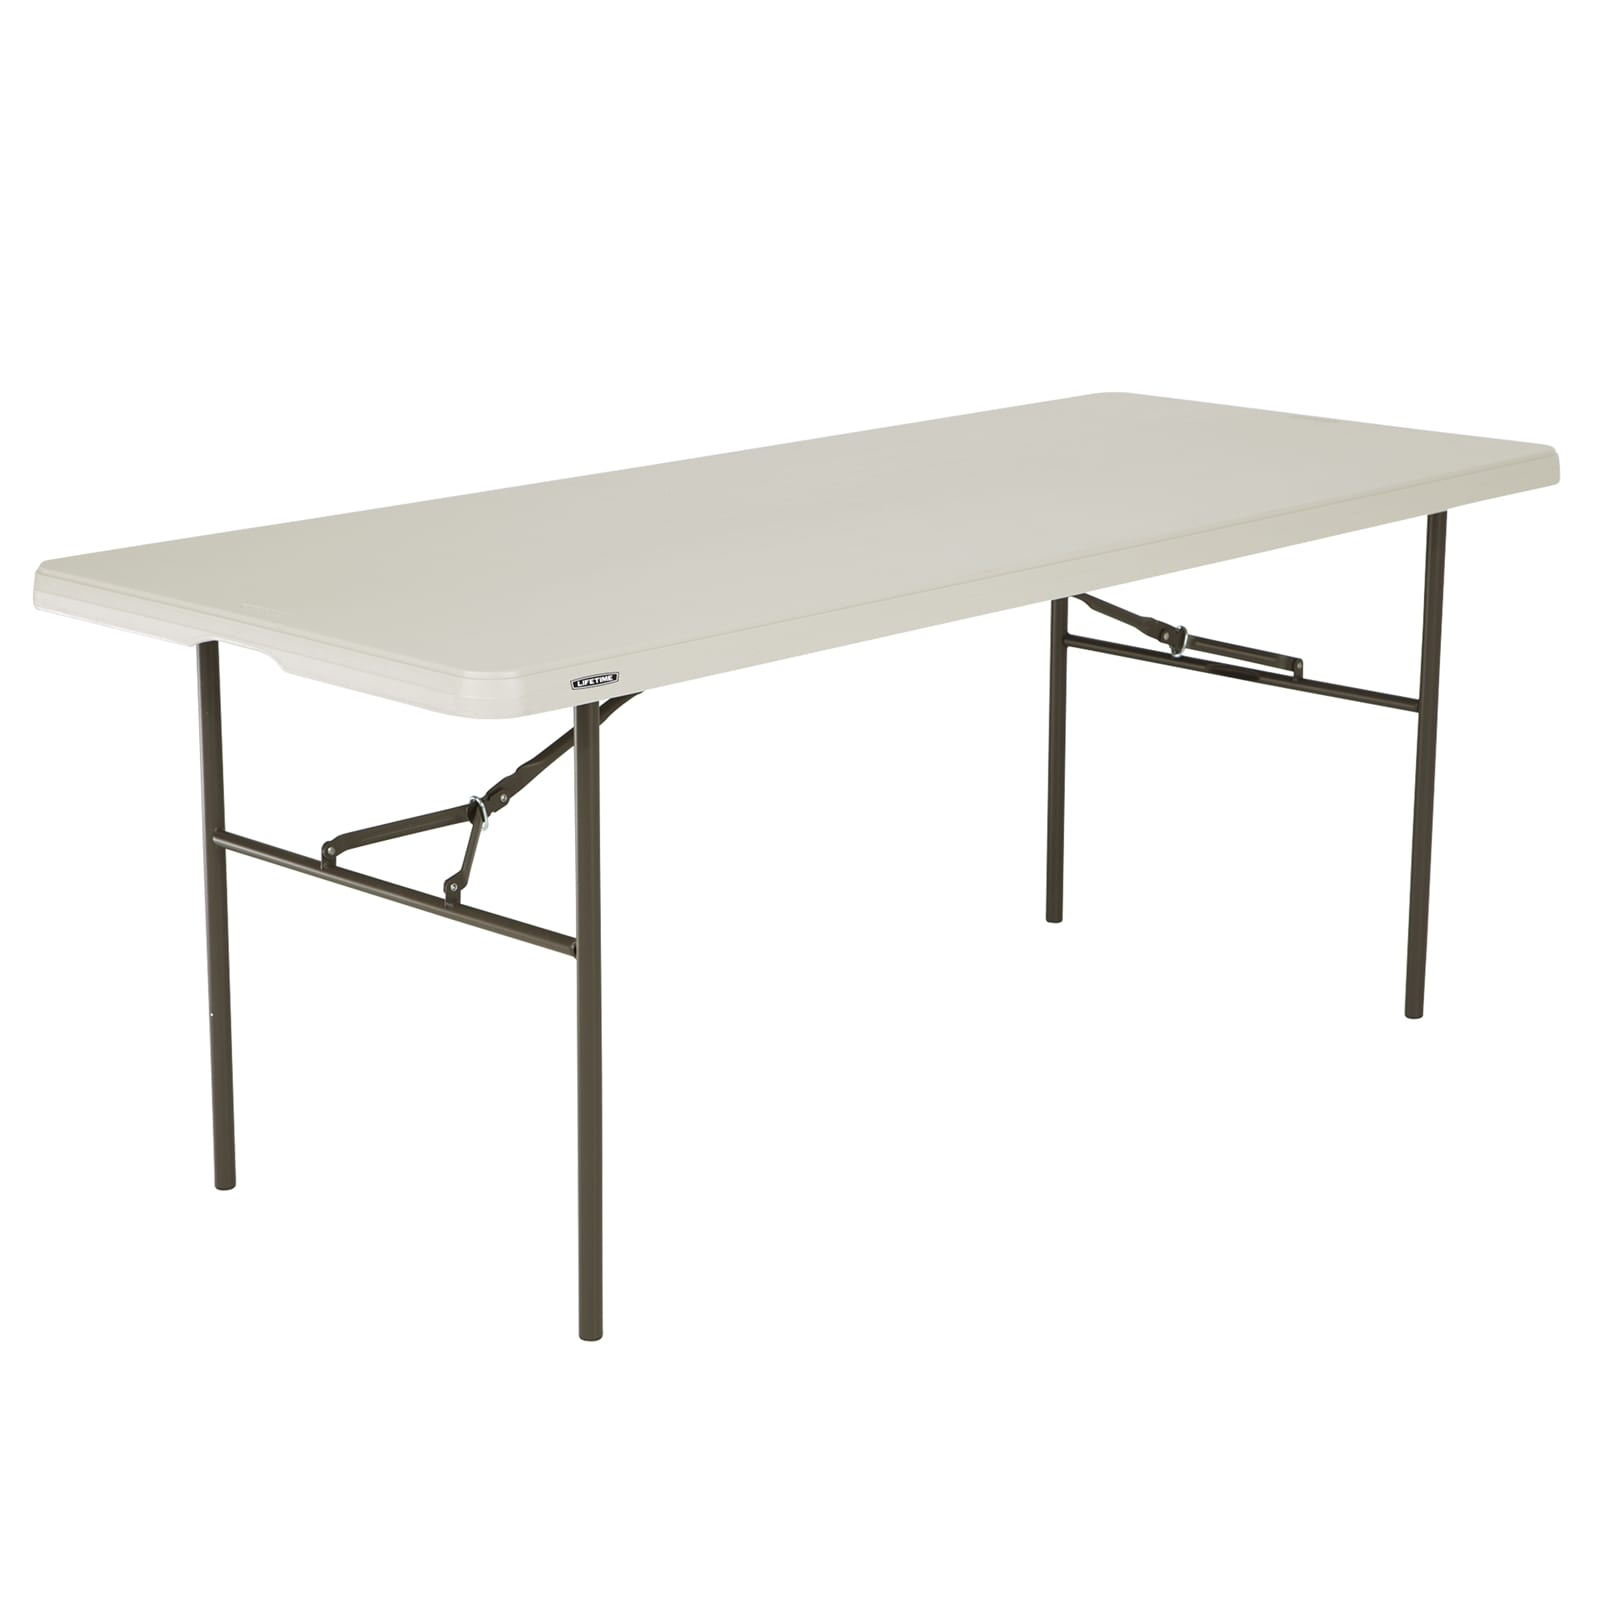 6ft plastic table